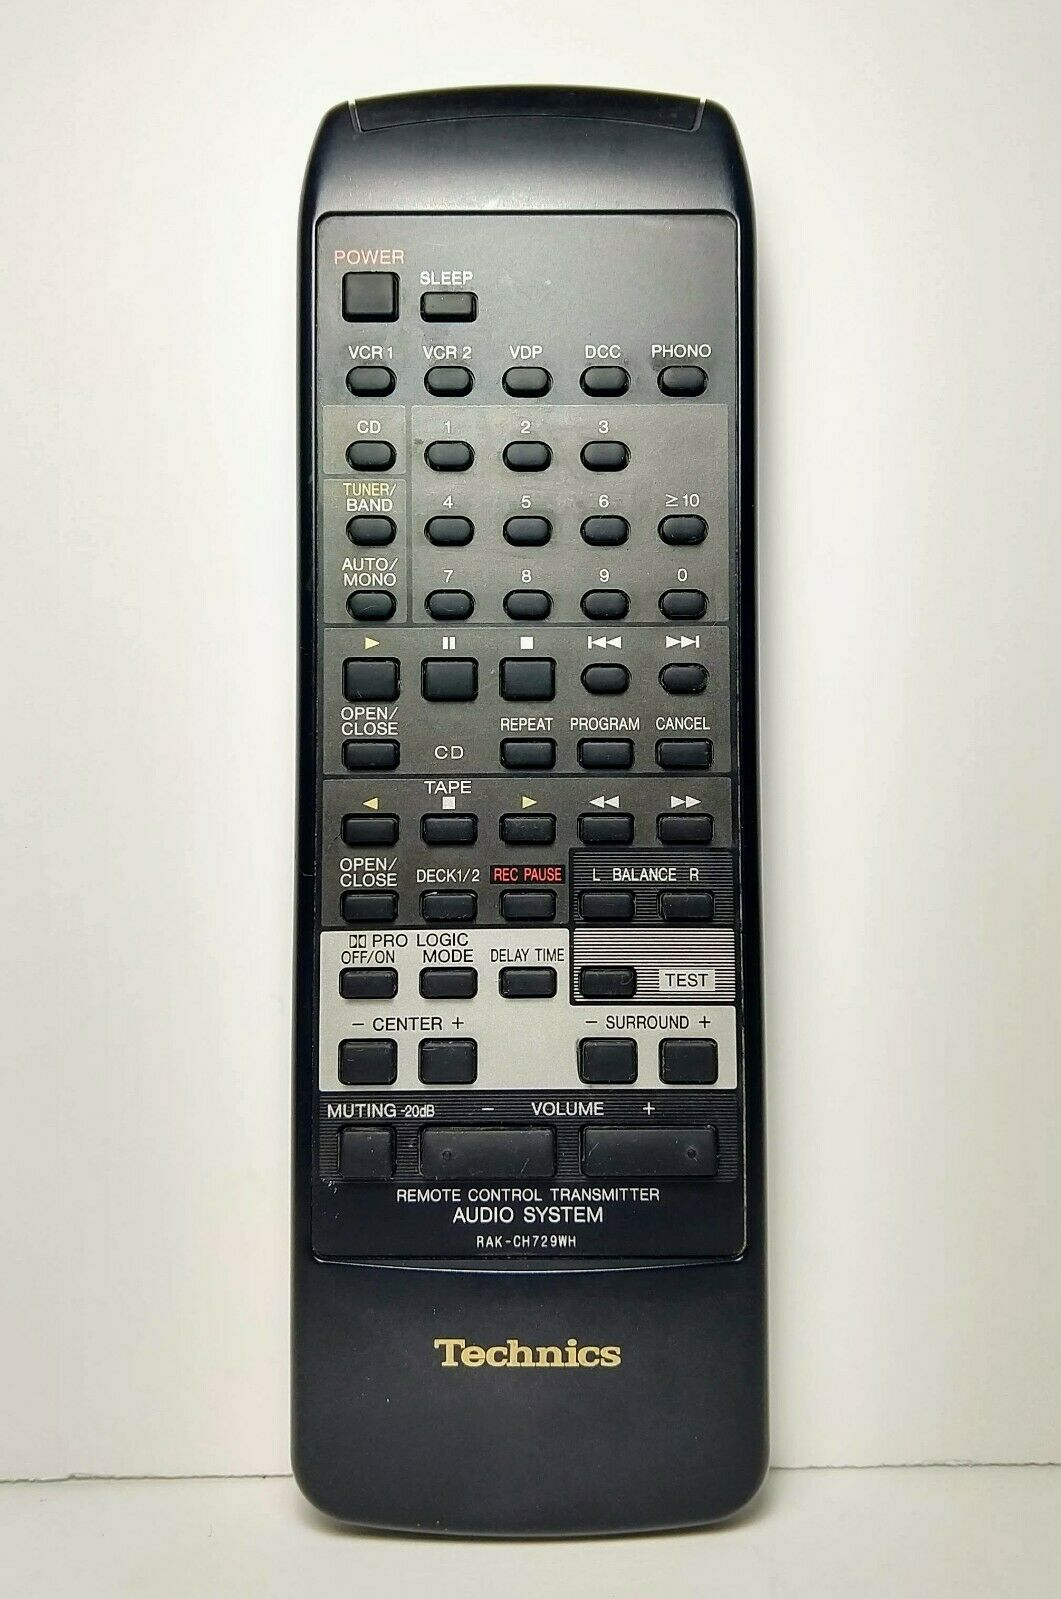 Technics RAK-CH729WH Remote Control Transmitter for SC-CA1080 Audio System